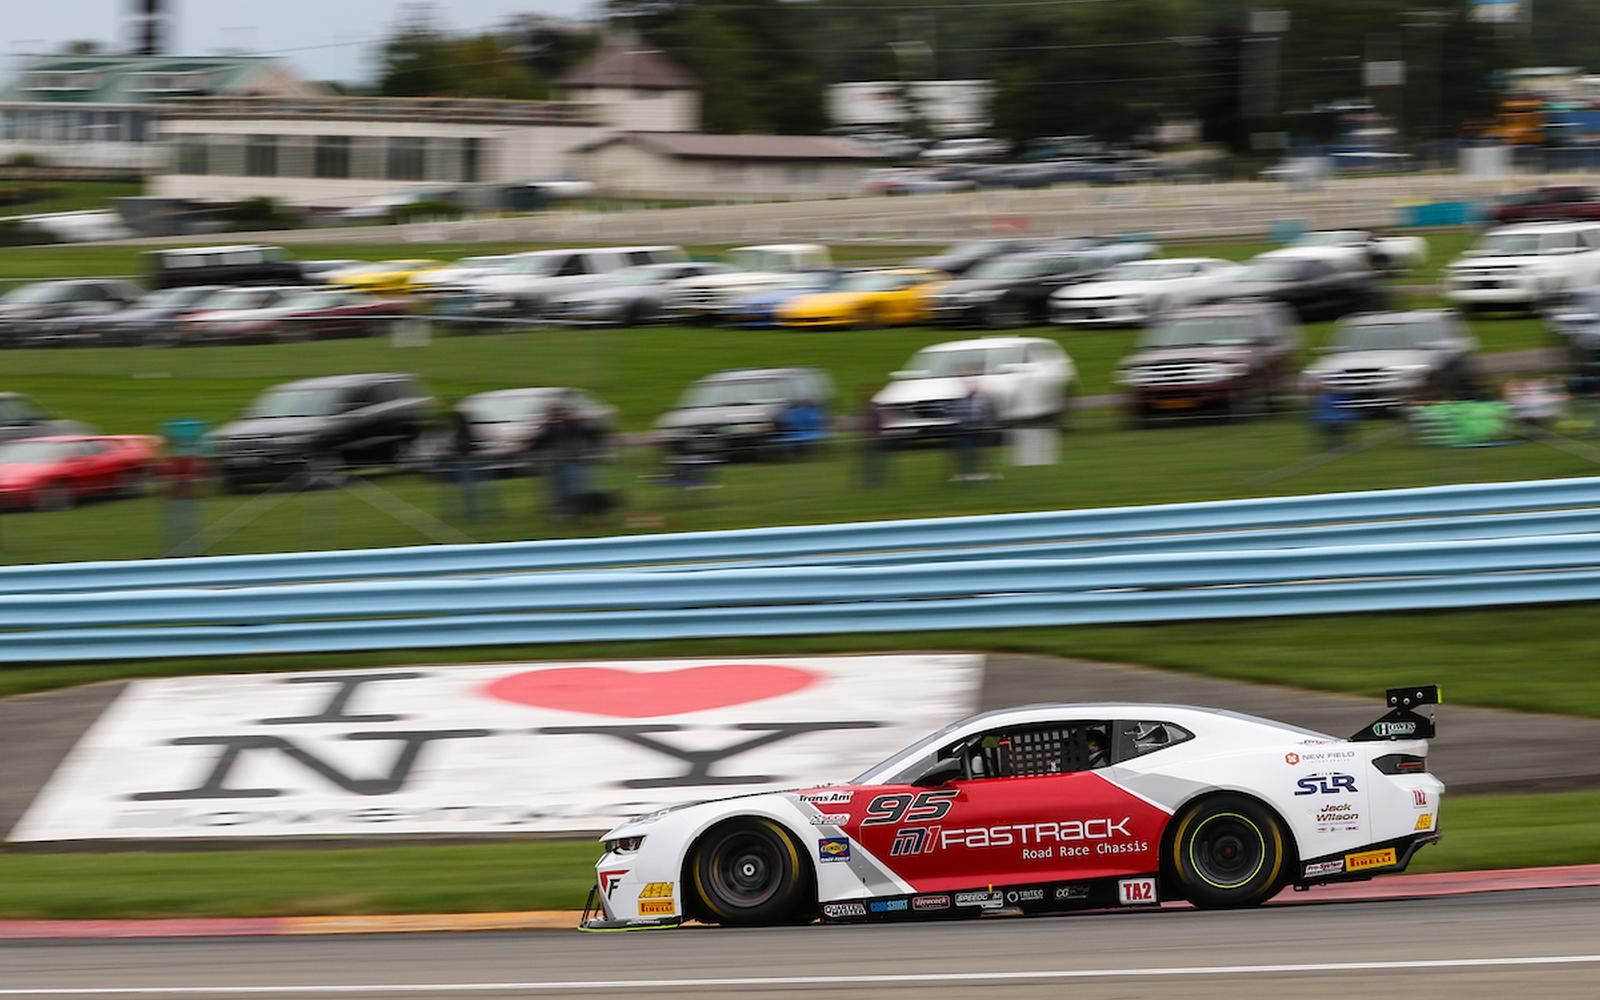 Fields Racing/Team SLR and Lawrence Equipment ink partnership for VIR.